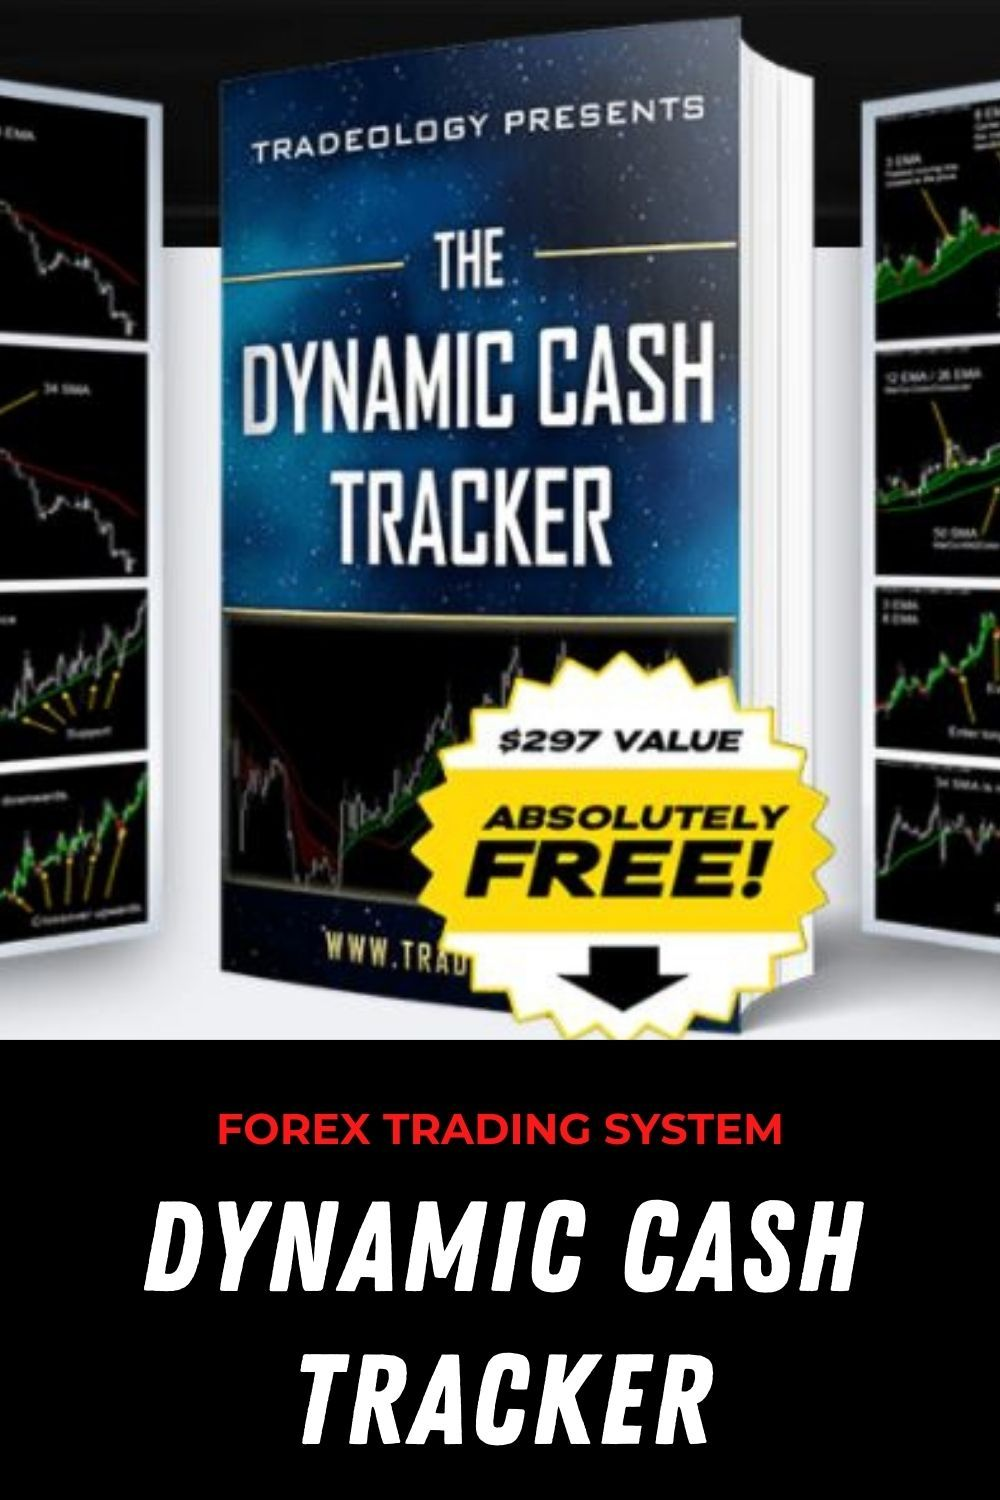 Forex Trading System To Make Money Dynamic Cash Tracker Forex Trading Strategies Money Trading Forex Trading System